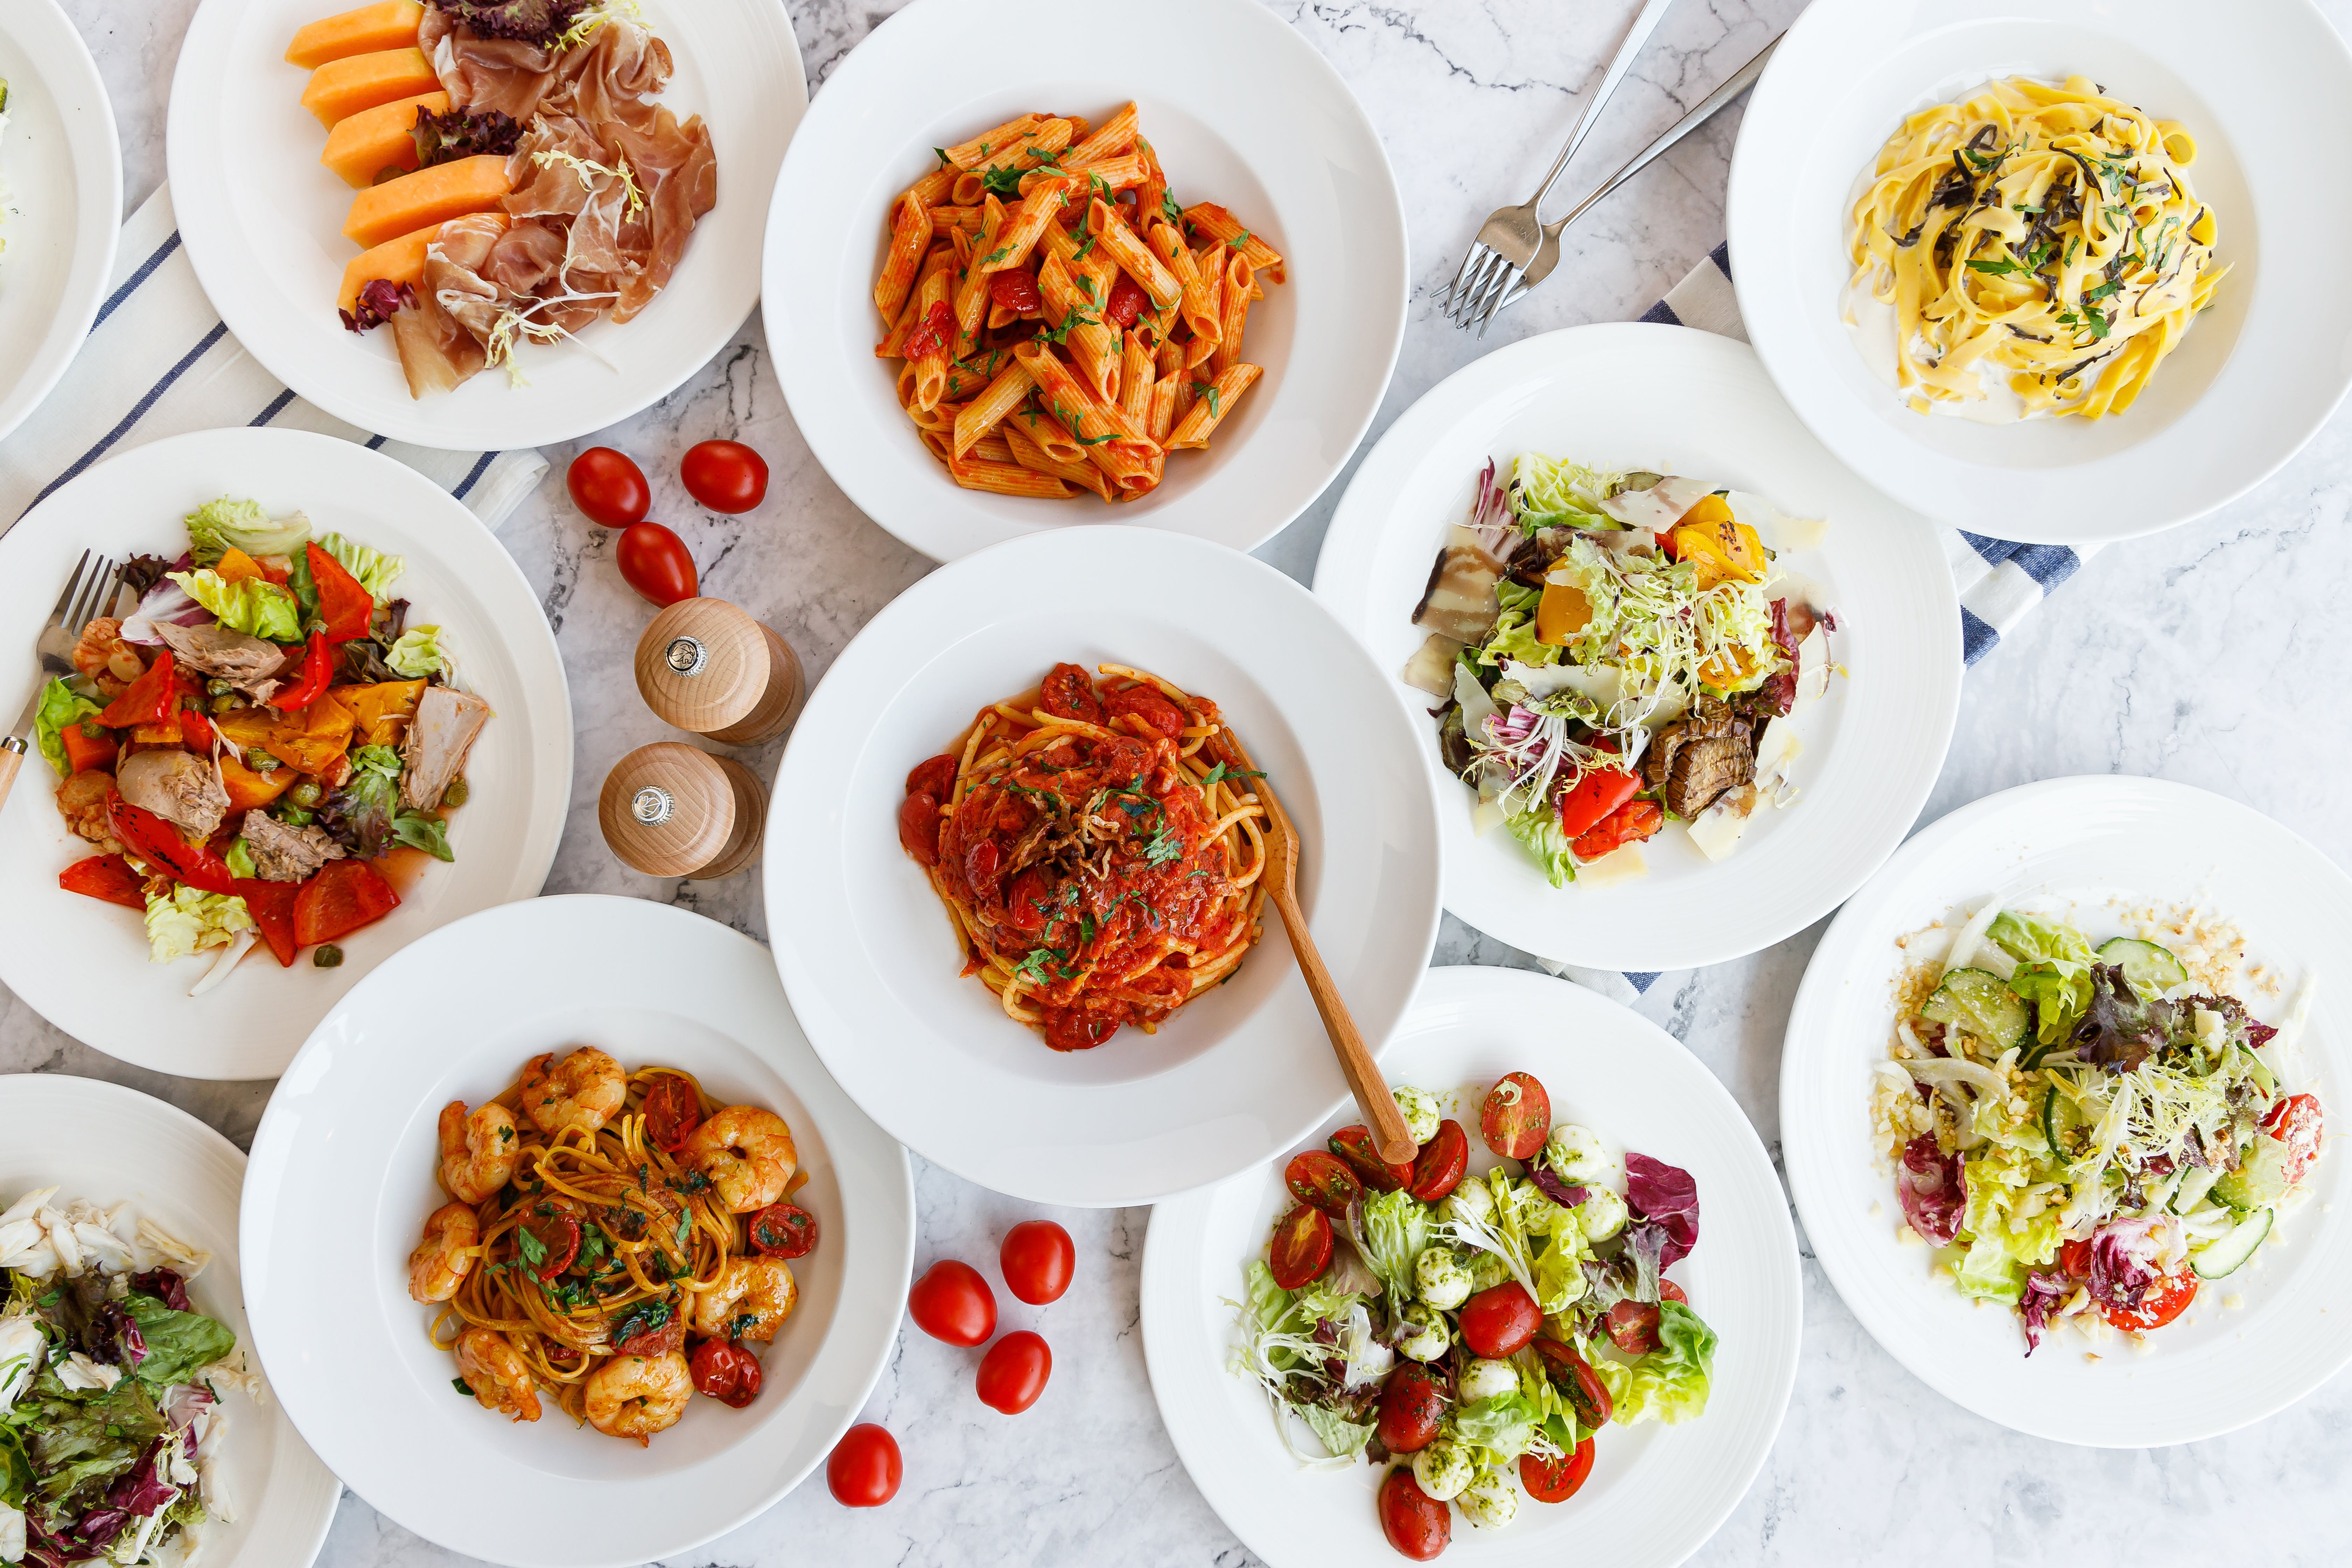 Angelini delivery from Hung Hom - Order with Deliveroo